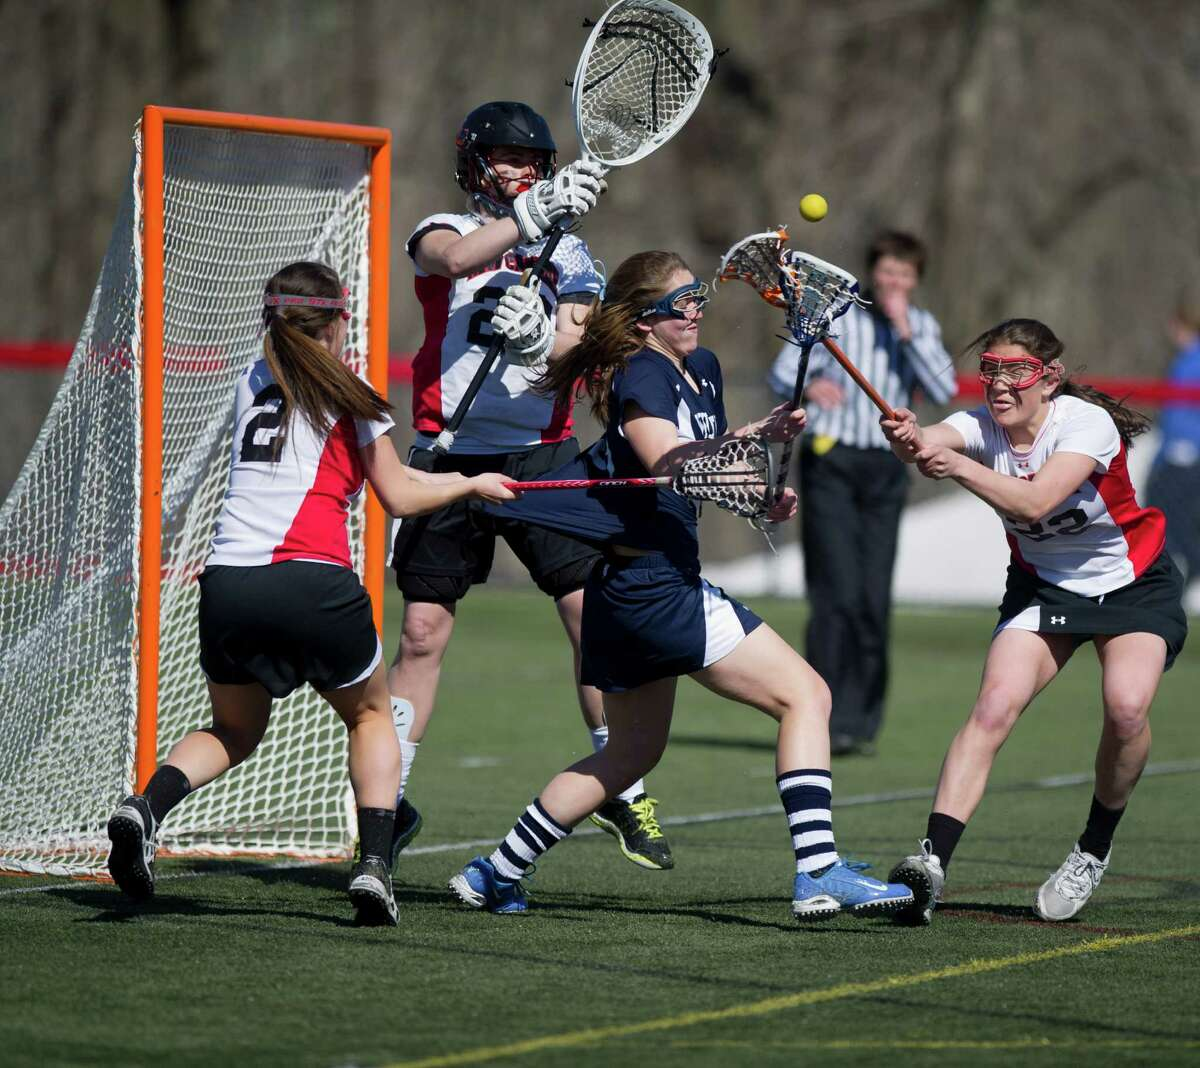 Wilton's Sara Dickinson takes a shot as she is surrounded by New Canaan's Lizzy Burke, left, goalie Liz O'Sullivan, center, and Olivia Hompe, right, during Saturday's girl's lacrosse game at New Canaan High School on April 6, 2013.